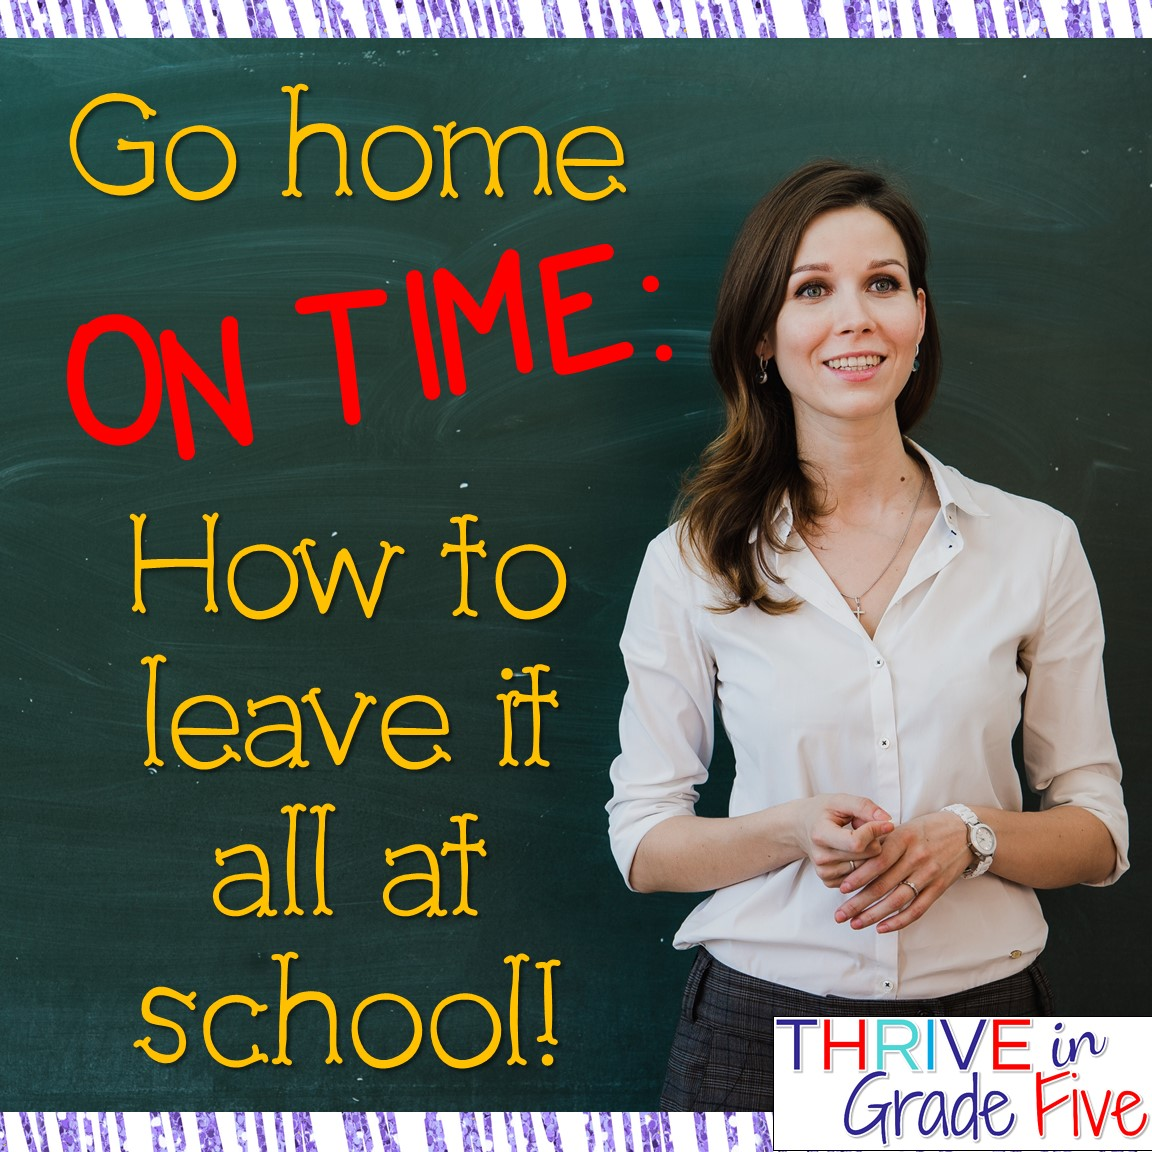 Go Home On Time How To Leave It All At School